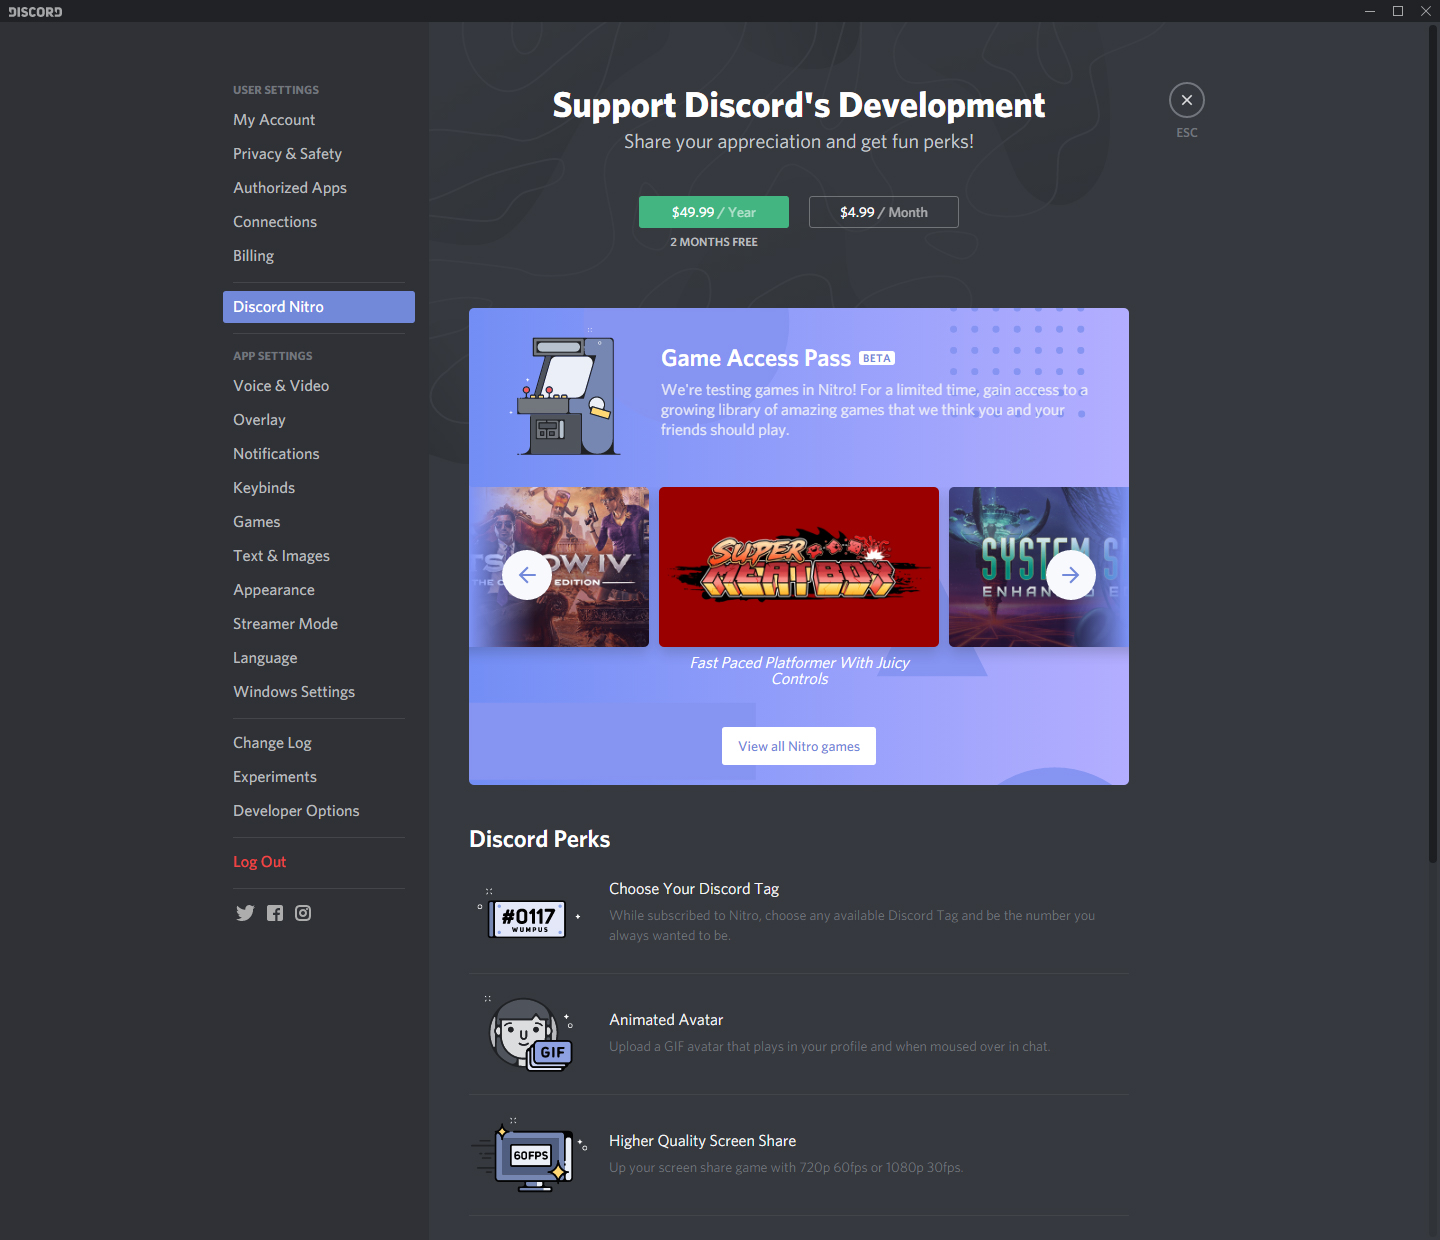 Discord is opening up its own storefront